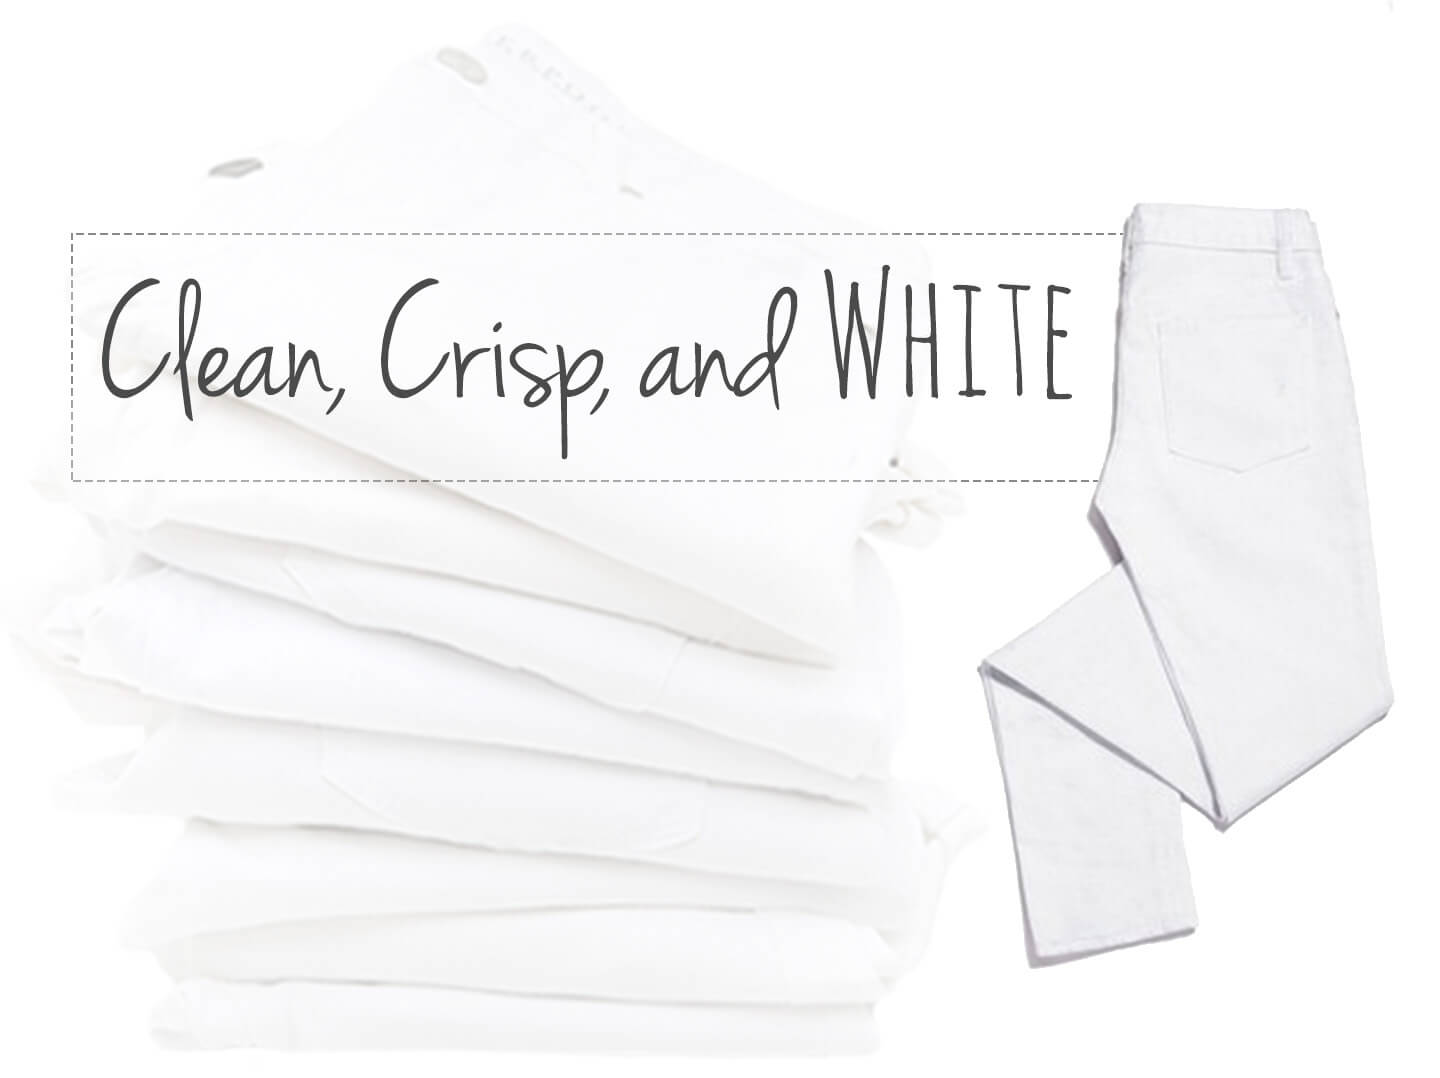 How To Keep Your White Denin Clean And Crisp